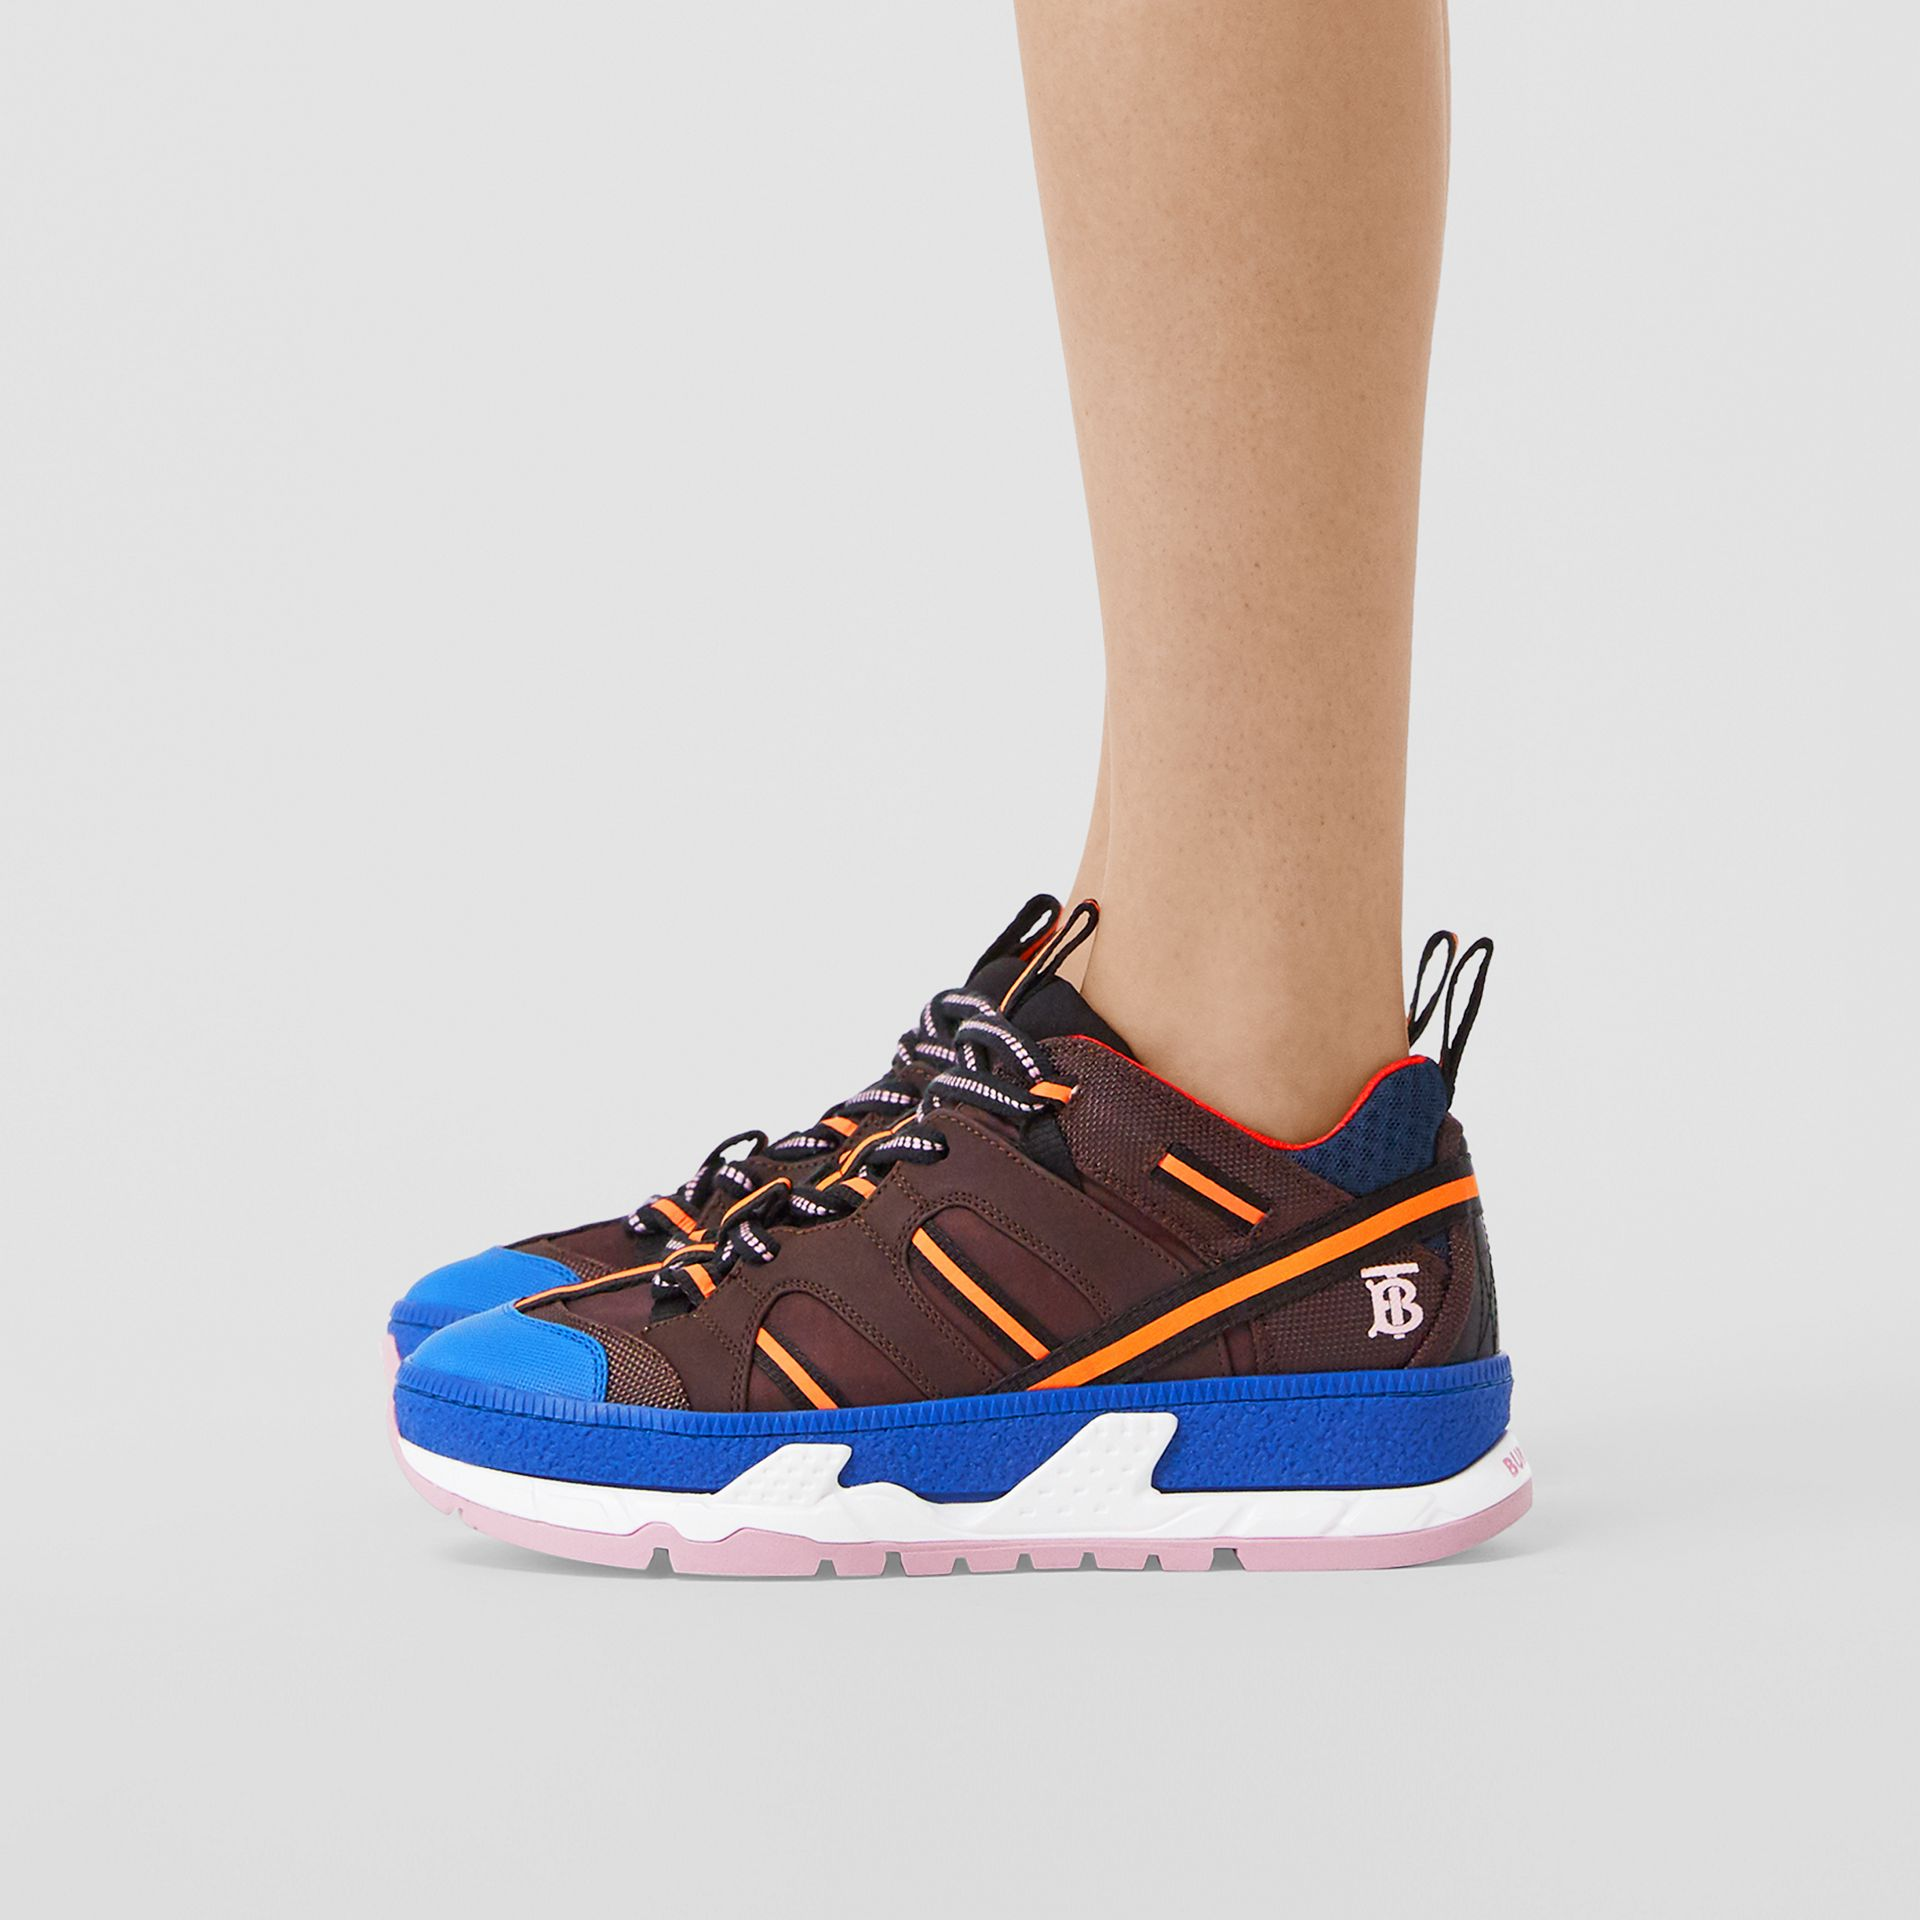 Nylon and Mesh Union Sneakers in Coffee/blue - Women | Burberry United Kingdom - gallery image 2